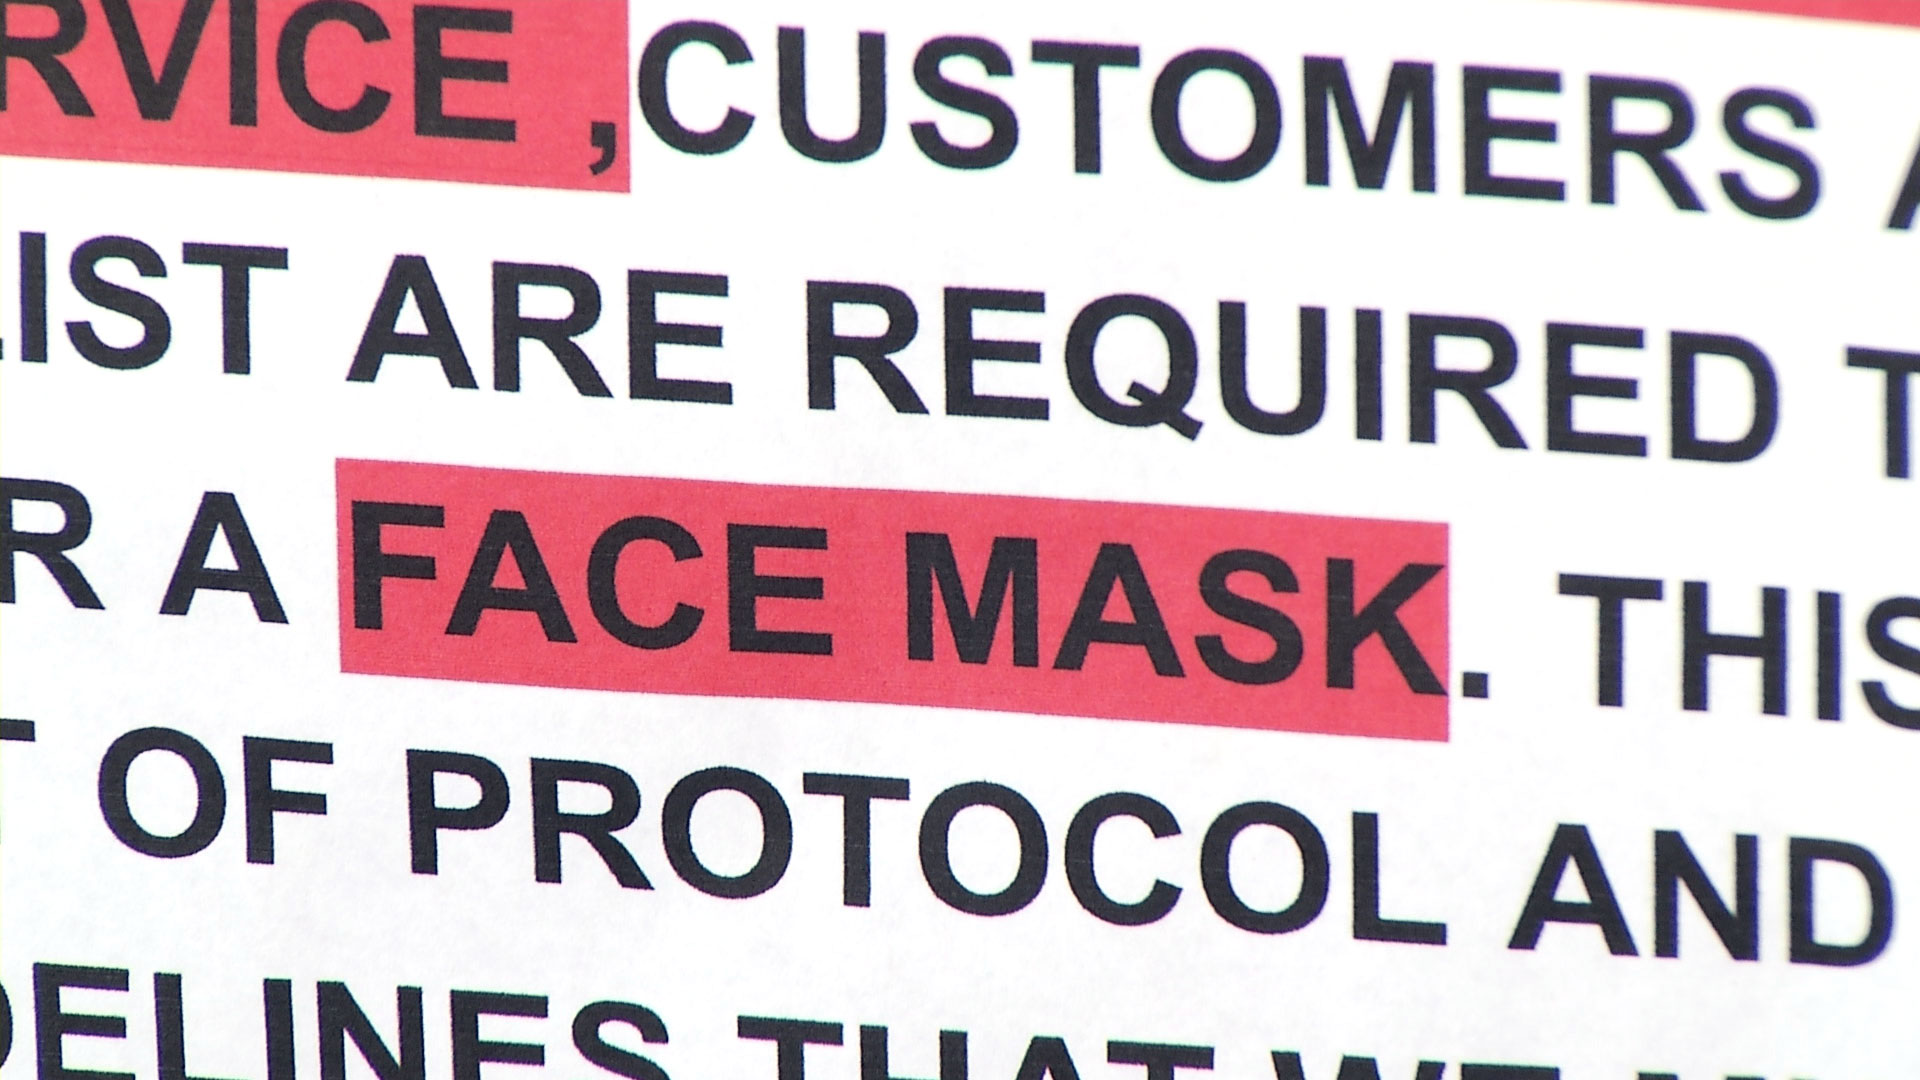 A close up of a message at Eclips Cuts Salon in Tucson notifies customers that face masks are required to enter the business. May 12, 2020.